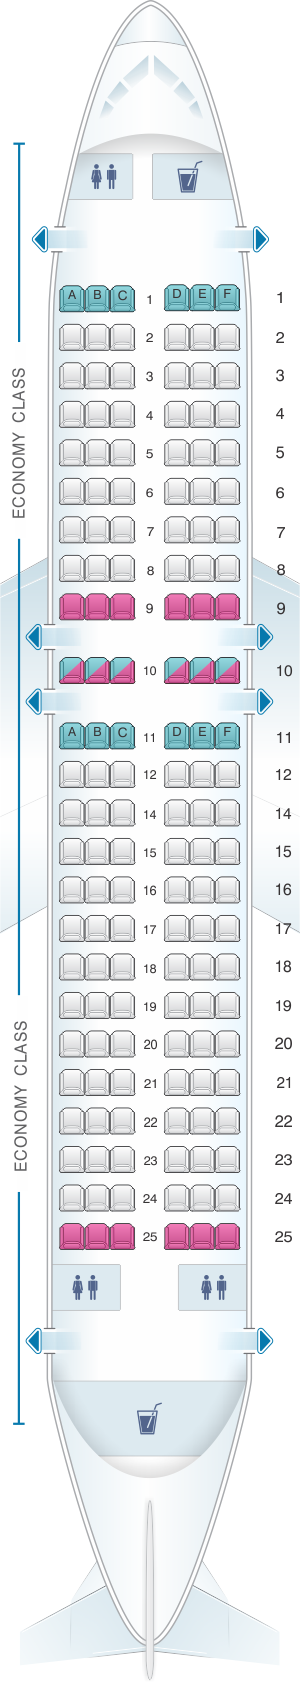 Seat map for Vueling Airbus A319